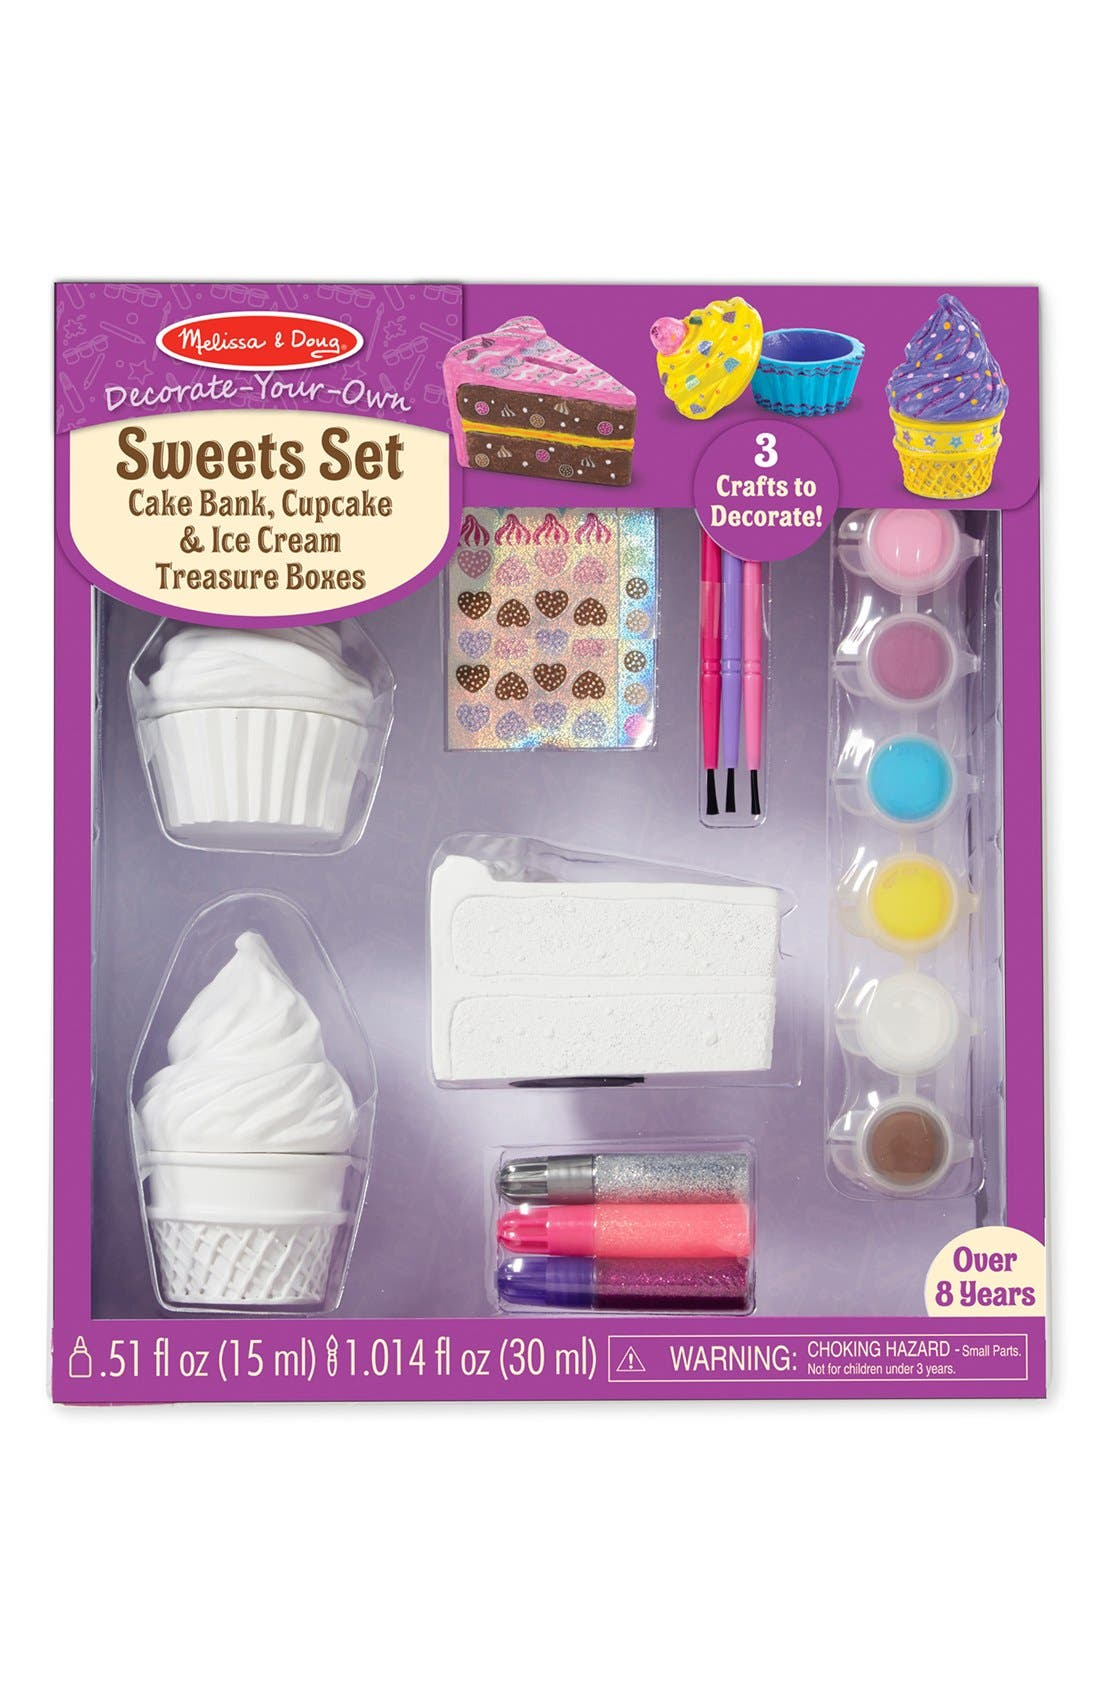 Melissa & Doug 'Decorate Your Own - Sweets' Craft Kit